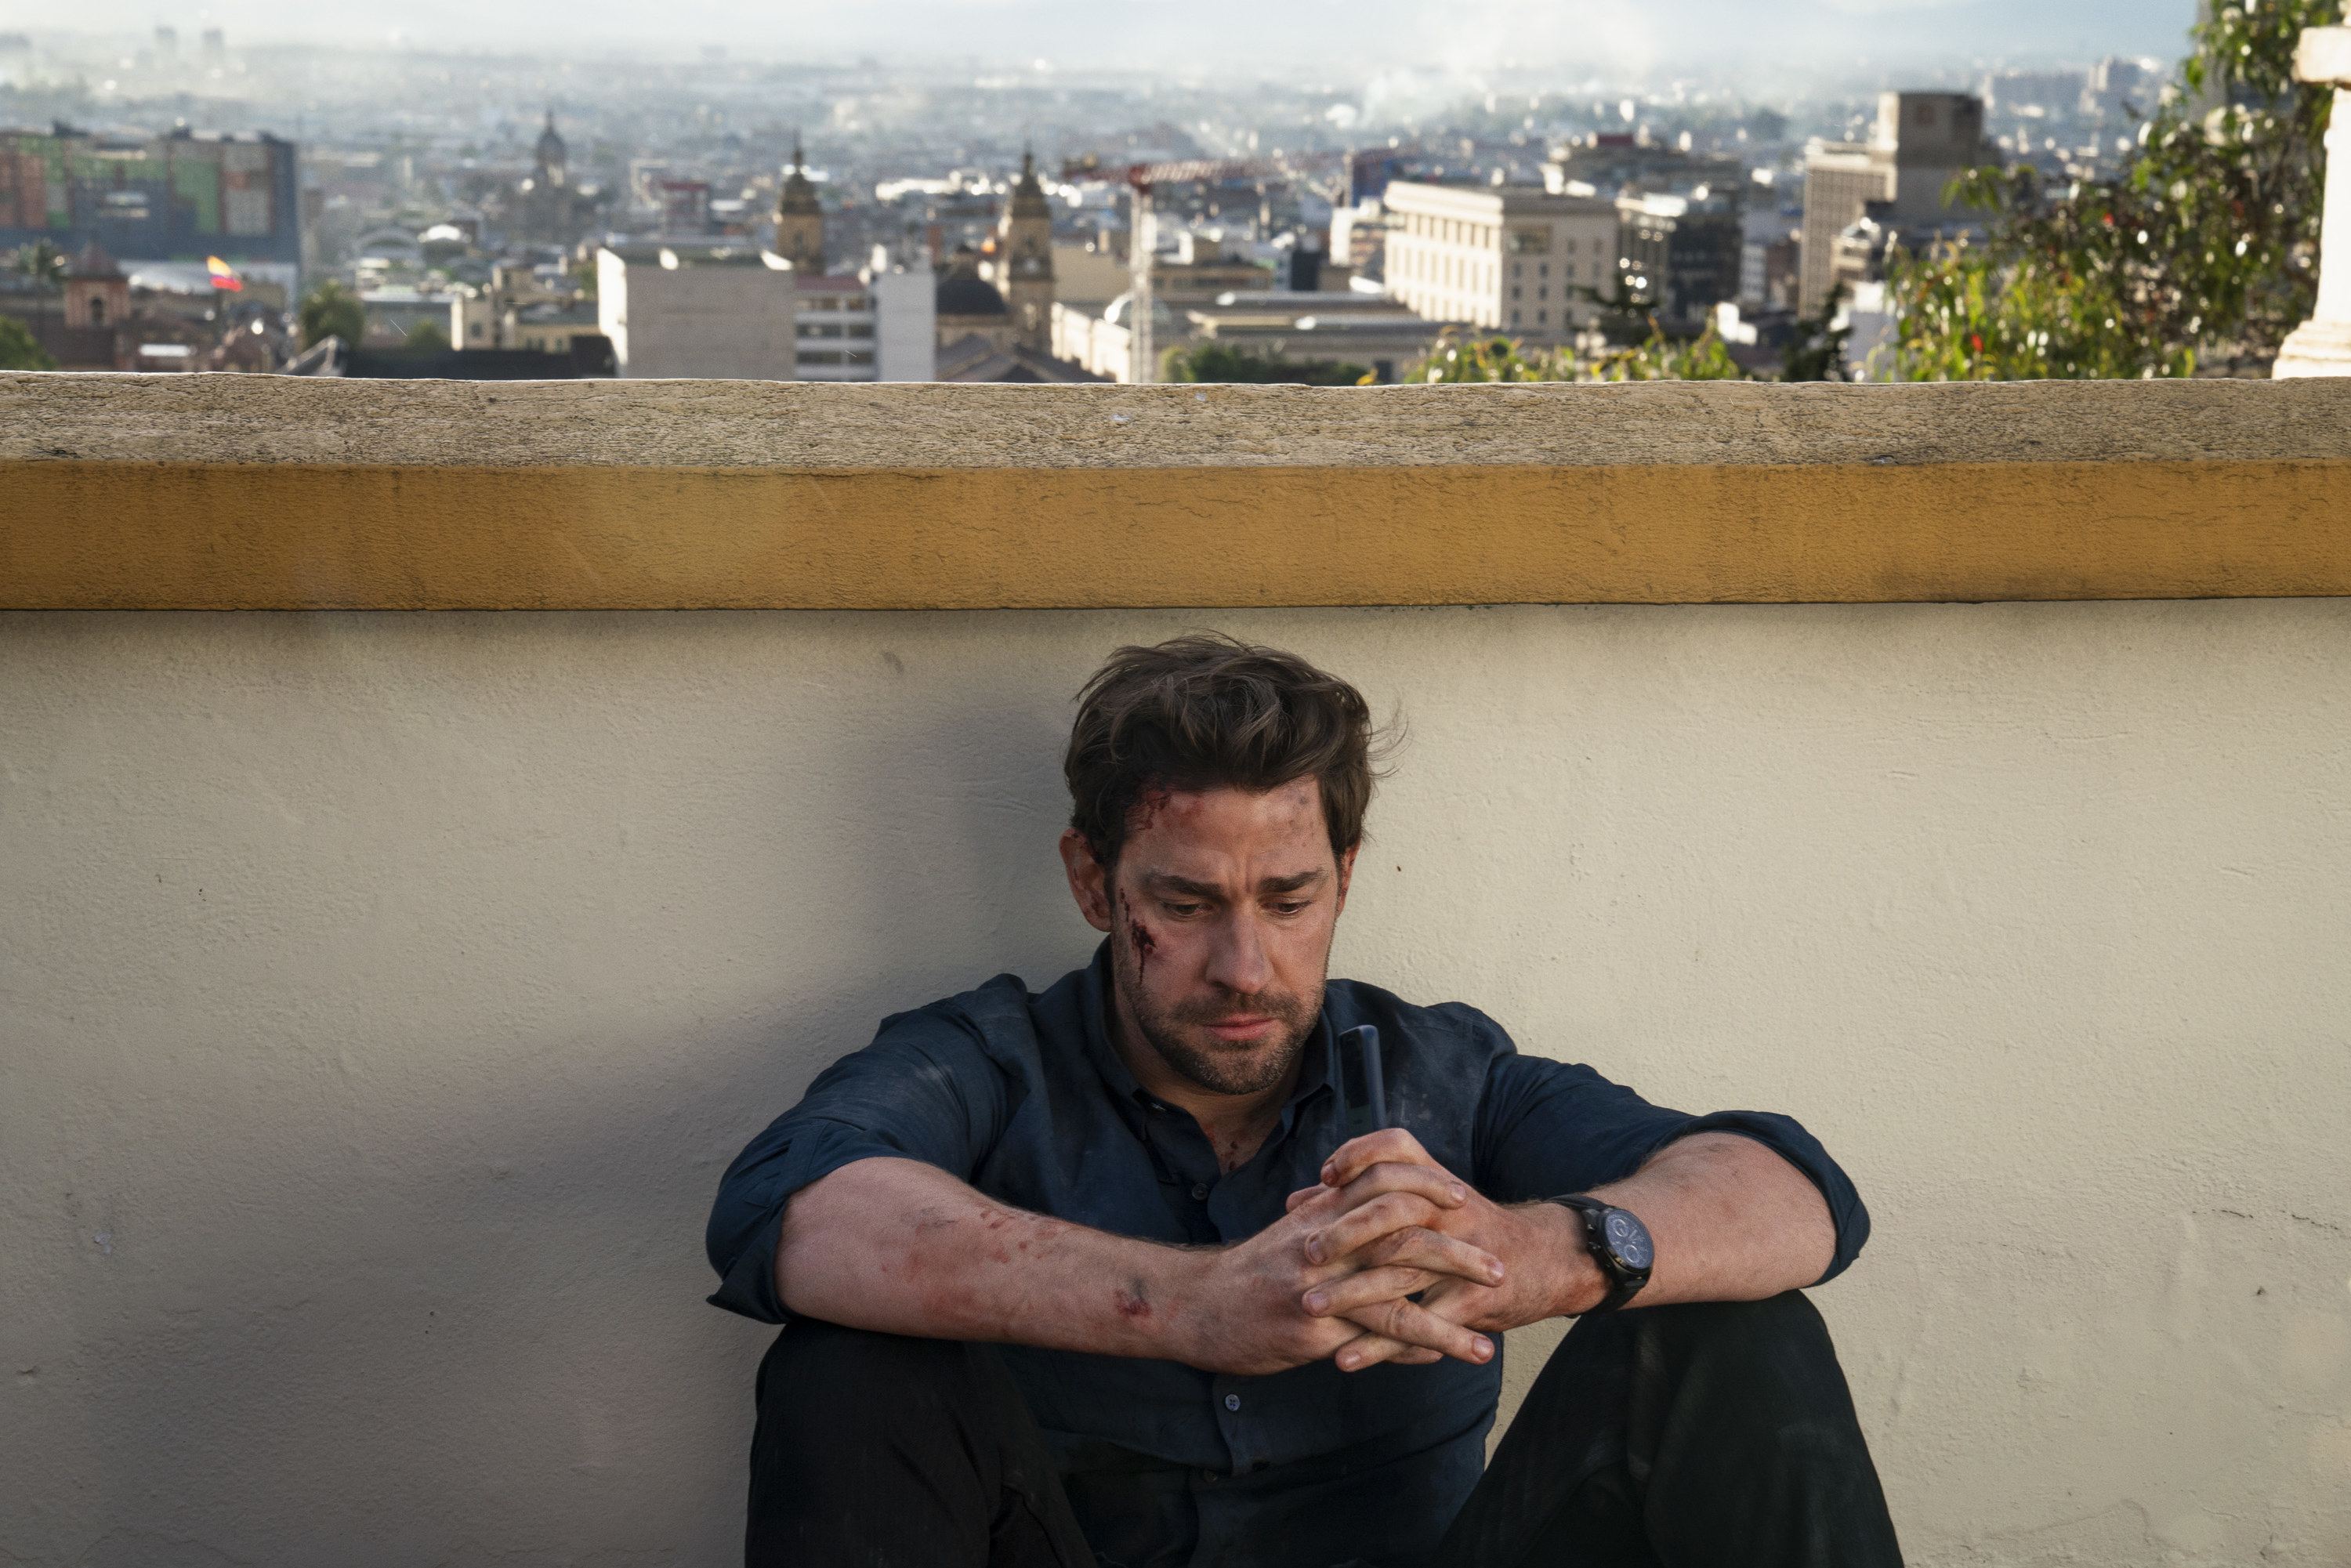 a still from the series Jack Ryan